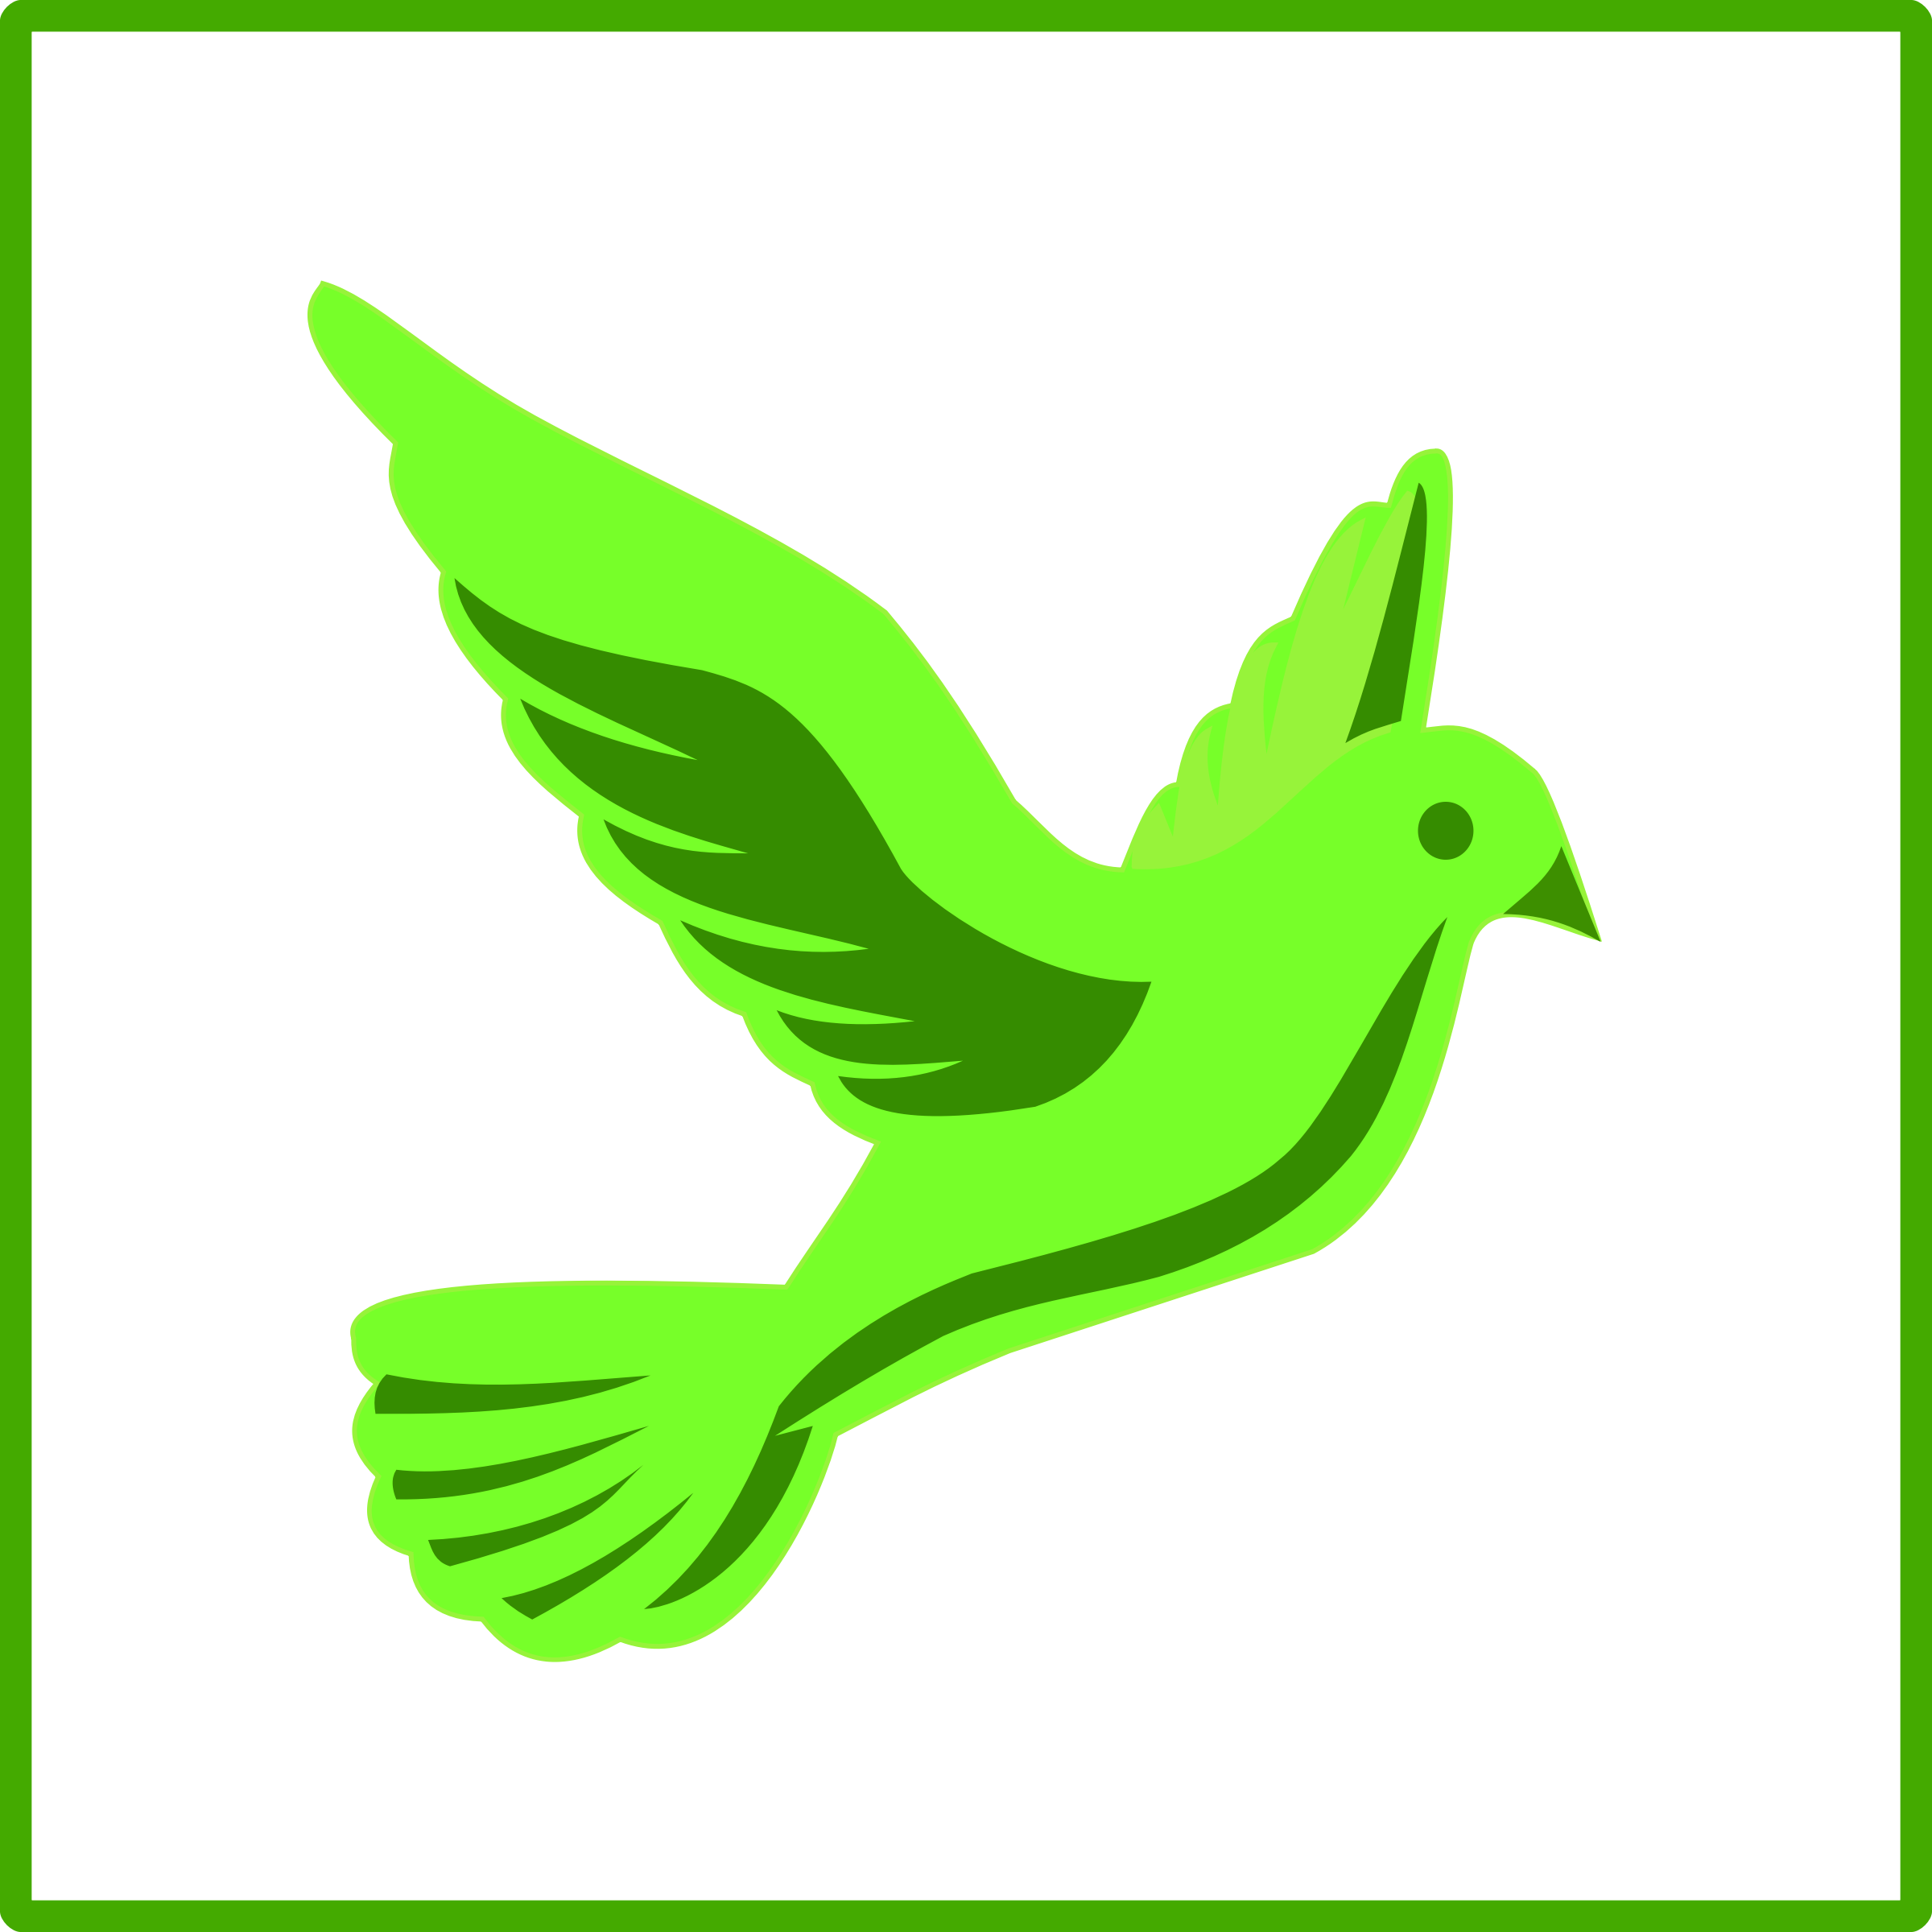 Peace Sign clipart green peace Green Clipart eco peace icon